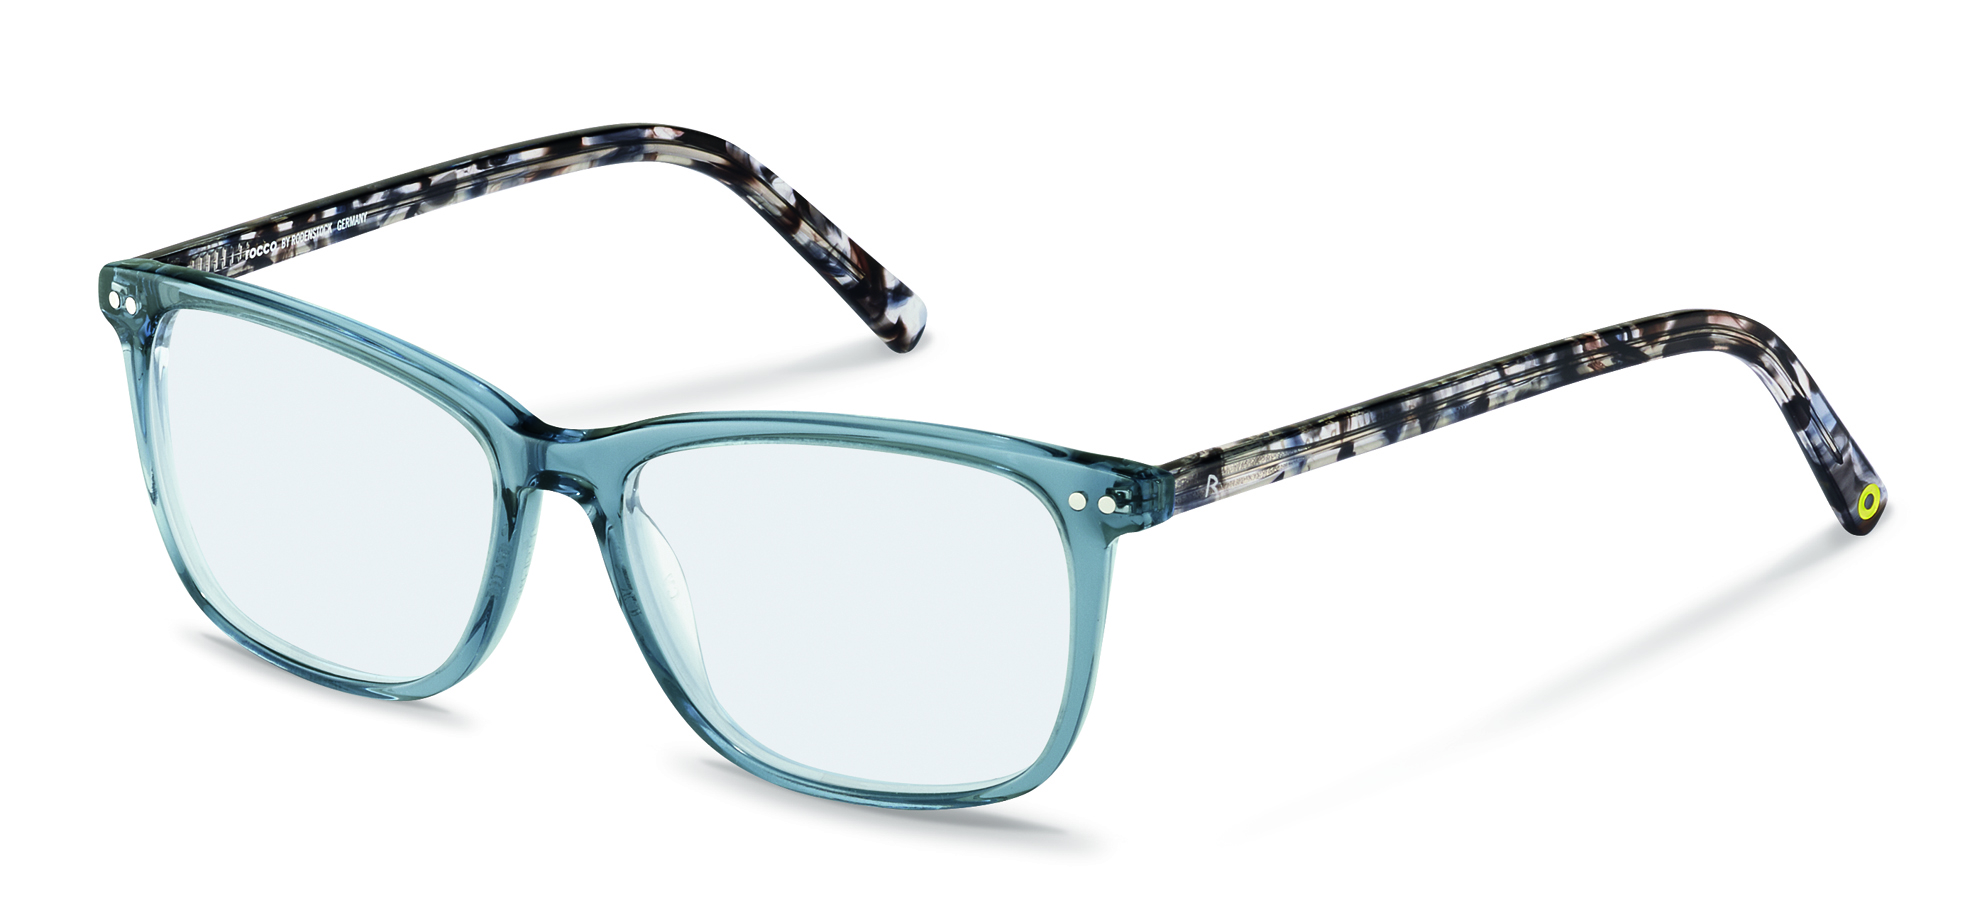 Rodenstock rocks the catwalk with new collection